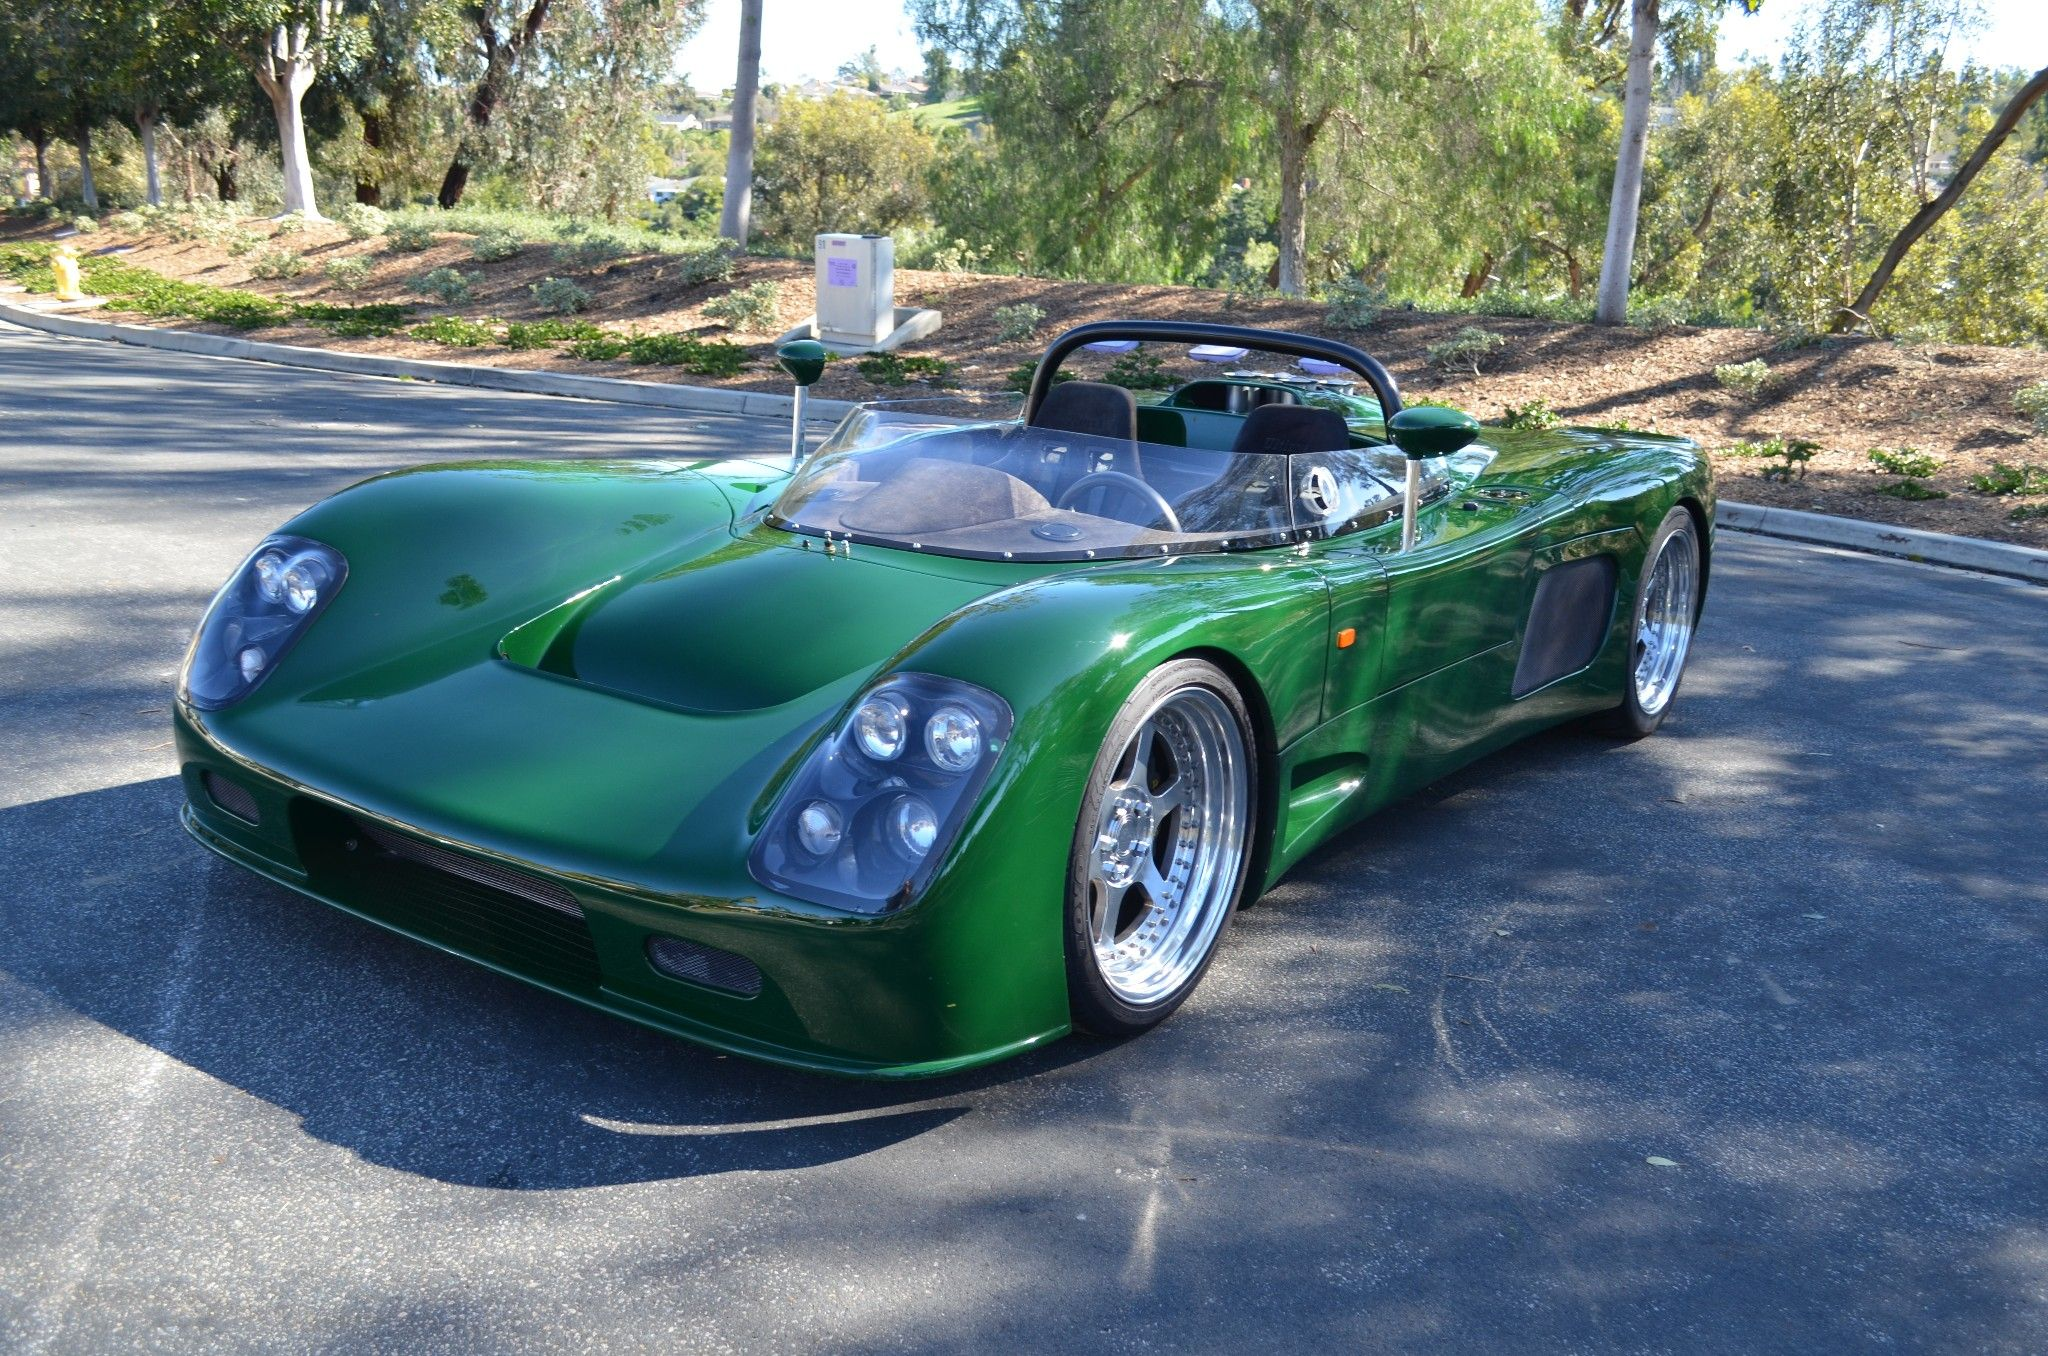 Tempt Fate With This Street-Legal 525-Horsepower Ultima Can Am